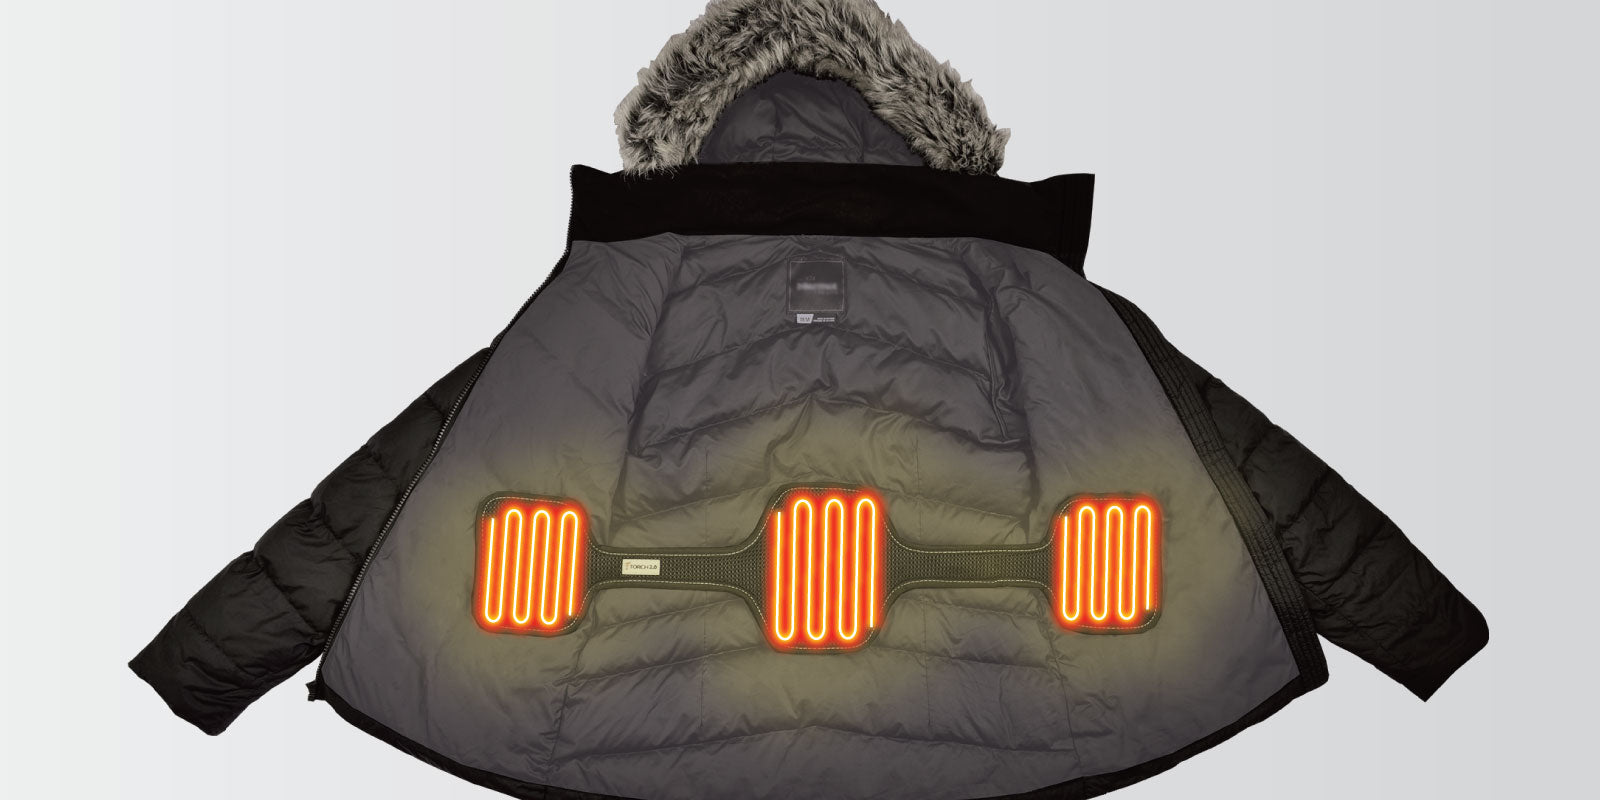 the torch coat heater attaches to the inside of your jacket so you can bring a portable heater with you on any adventure and in your favorite jacket.